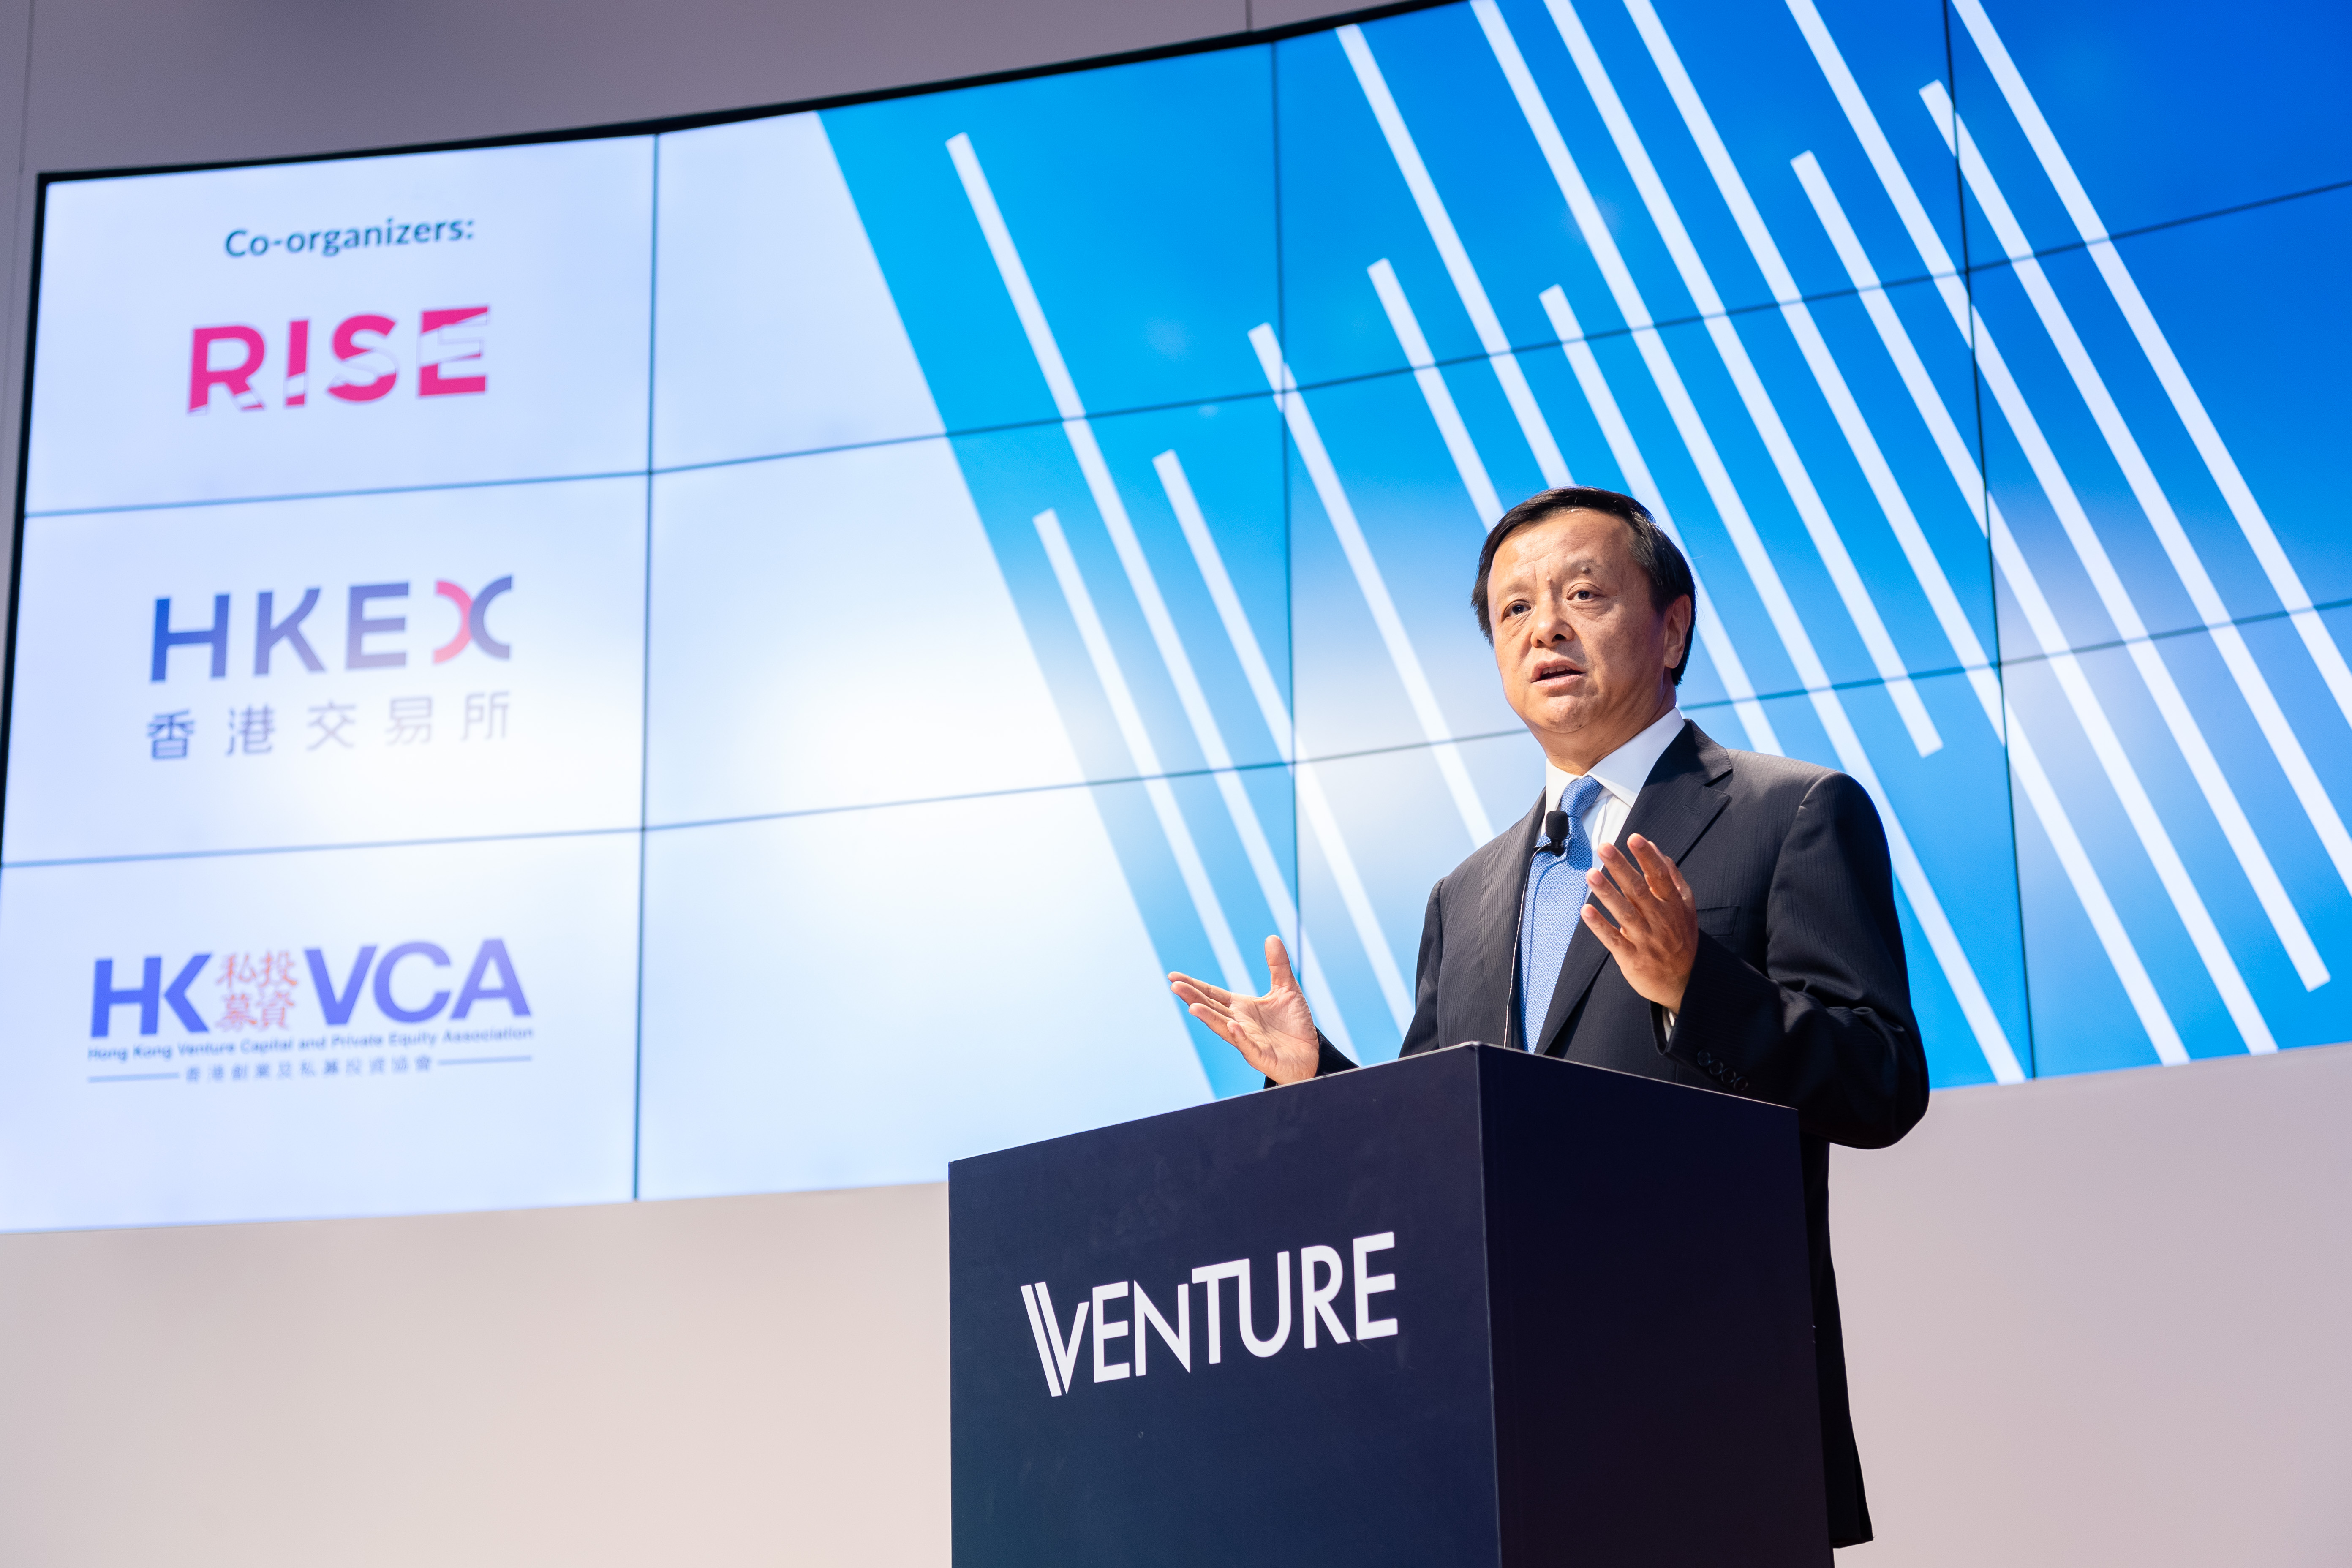 Charles Li, HKEX Chief Executive, delivers his keynote address.